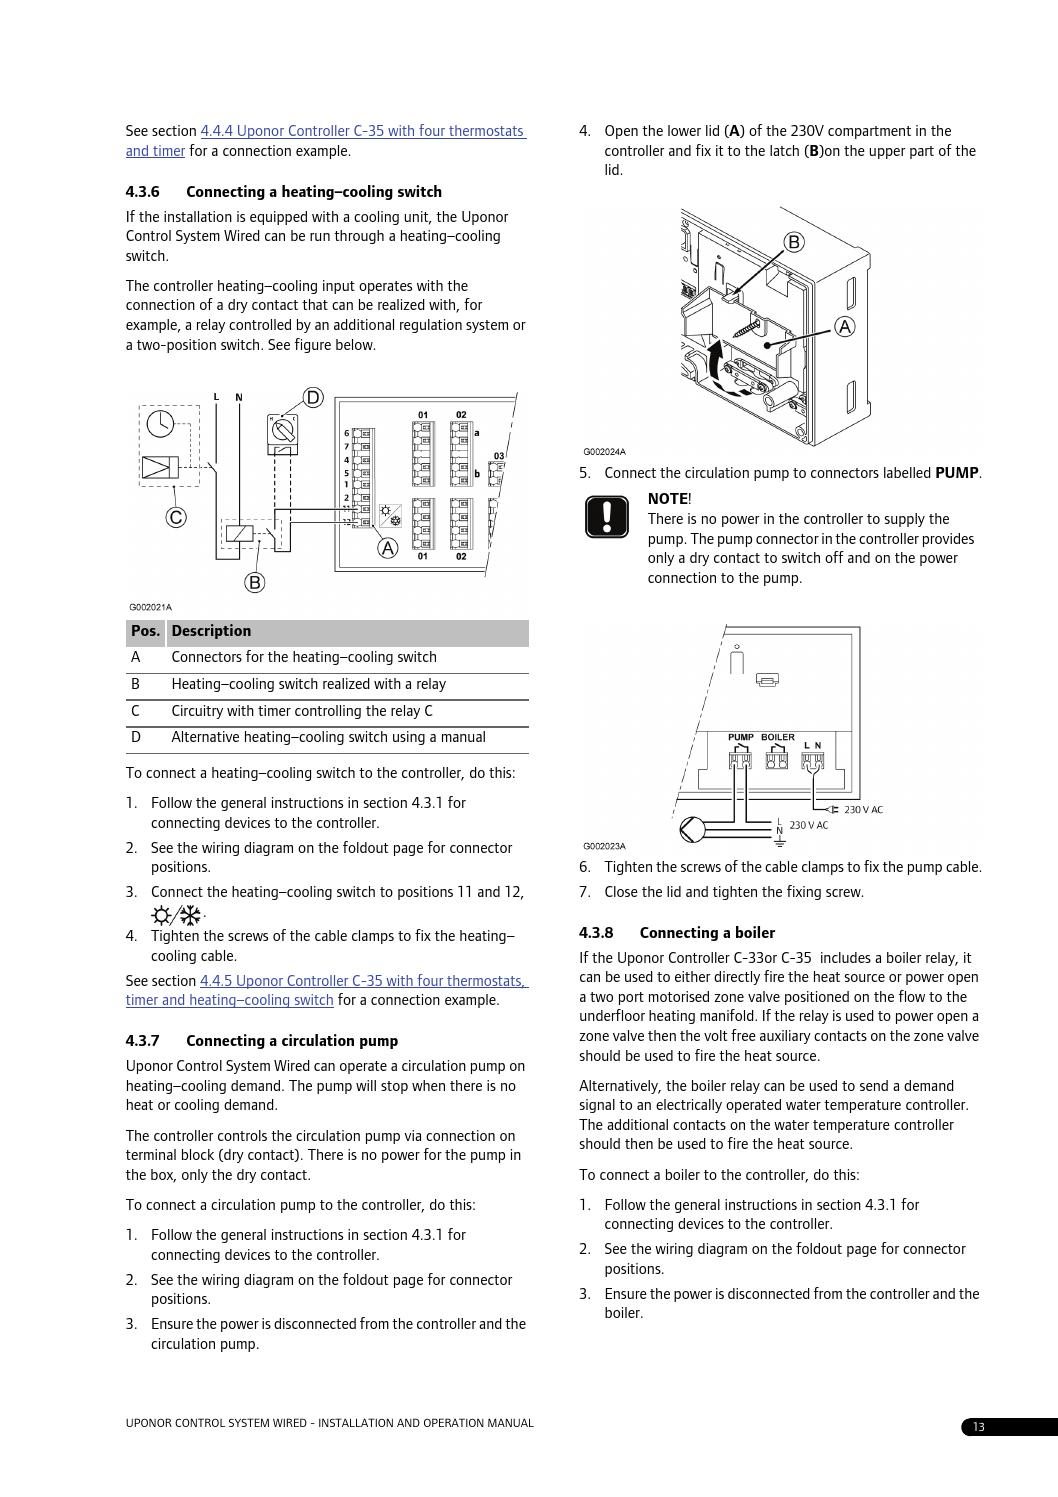 C35 Manual By Uponor Uk Issuu Heating Cooling Wiring Diagram